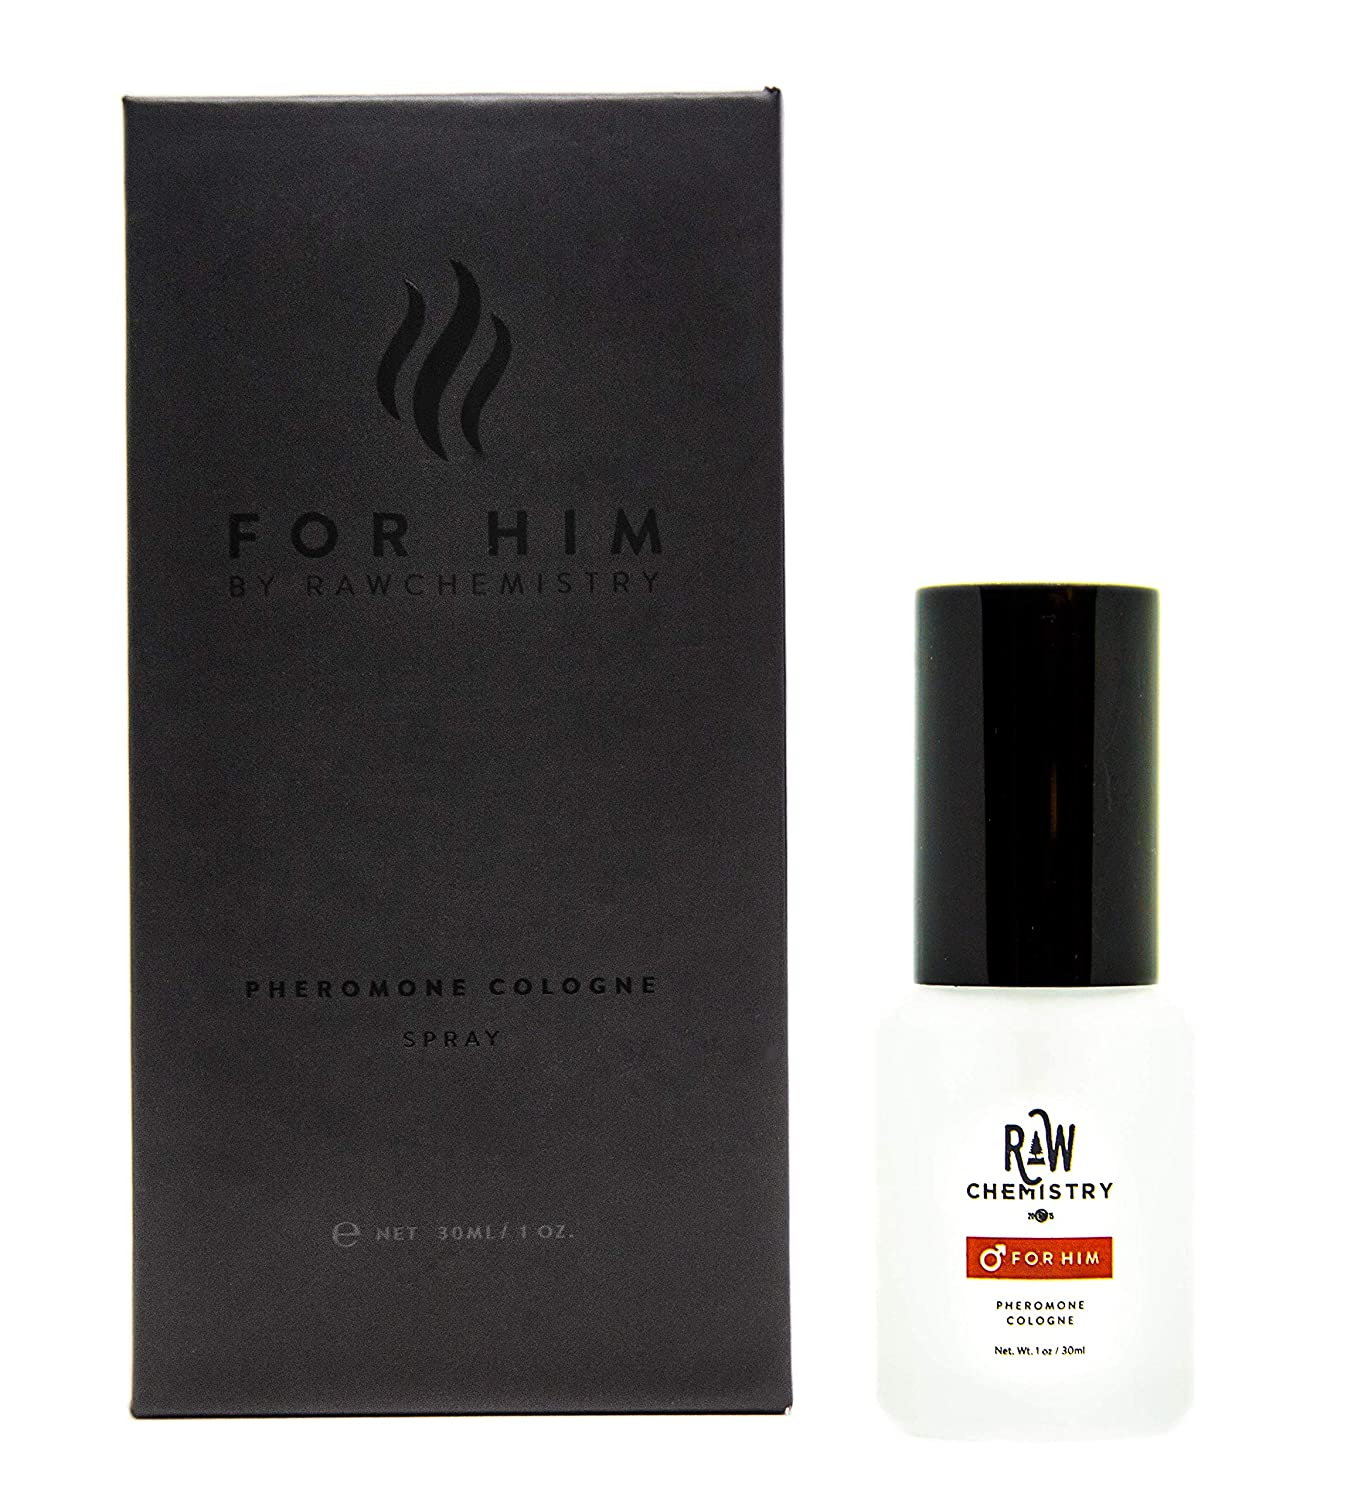 RawChemistry Pheromone Cologne, for Him [Attention Formula] - Bold, Extra Strength Formula 1 oz.